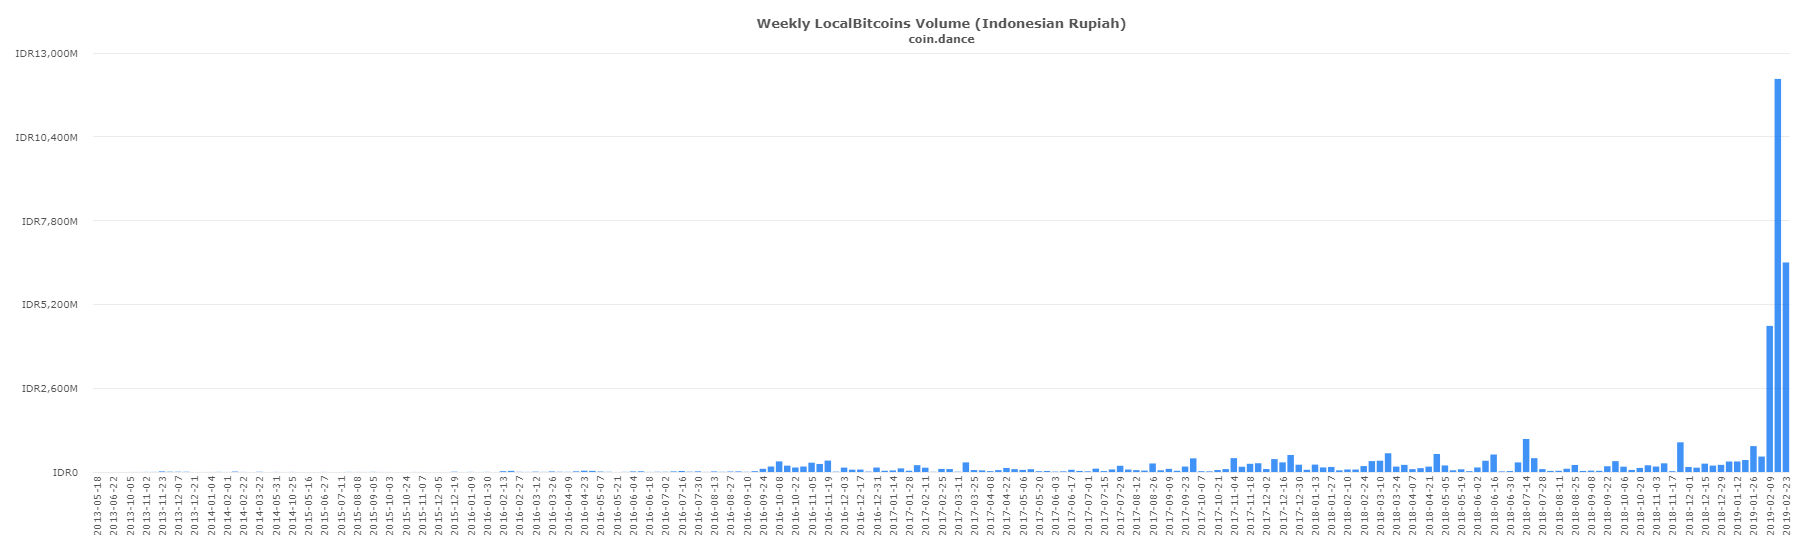 P2P Markets Report: Iranian Localbitcoins Volume Gains 190% in a Week